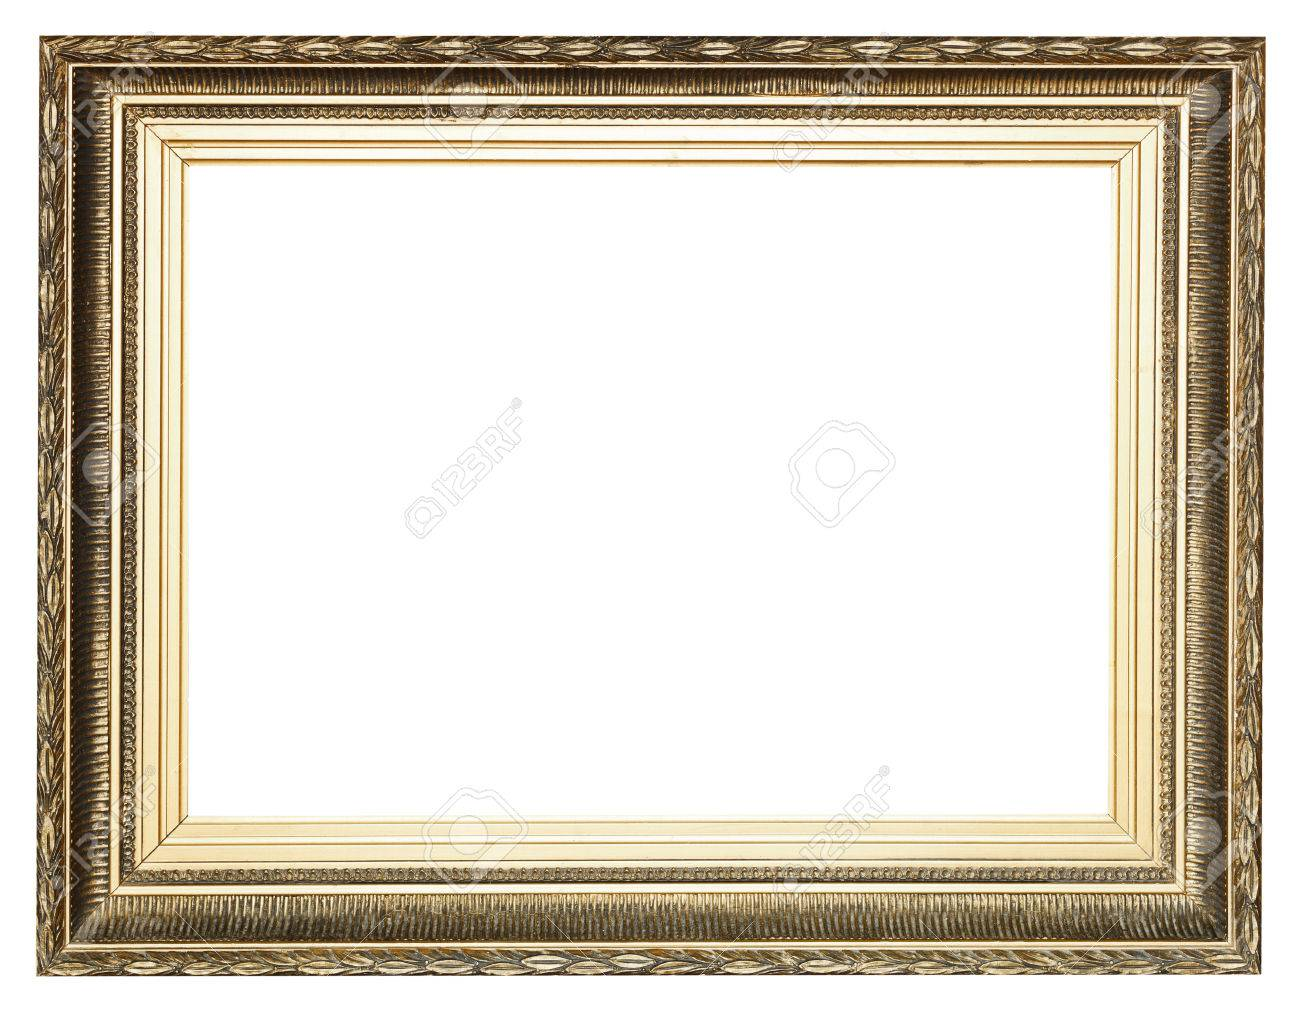 Big Wide Golden Ancient Wooden Picture Frame With Cut Out Canvas ...